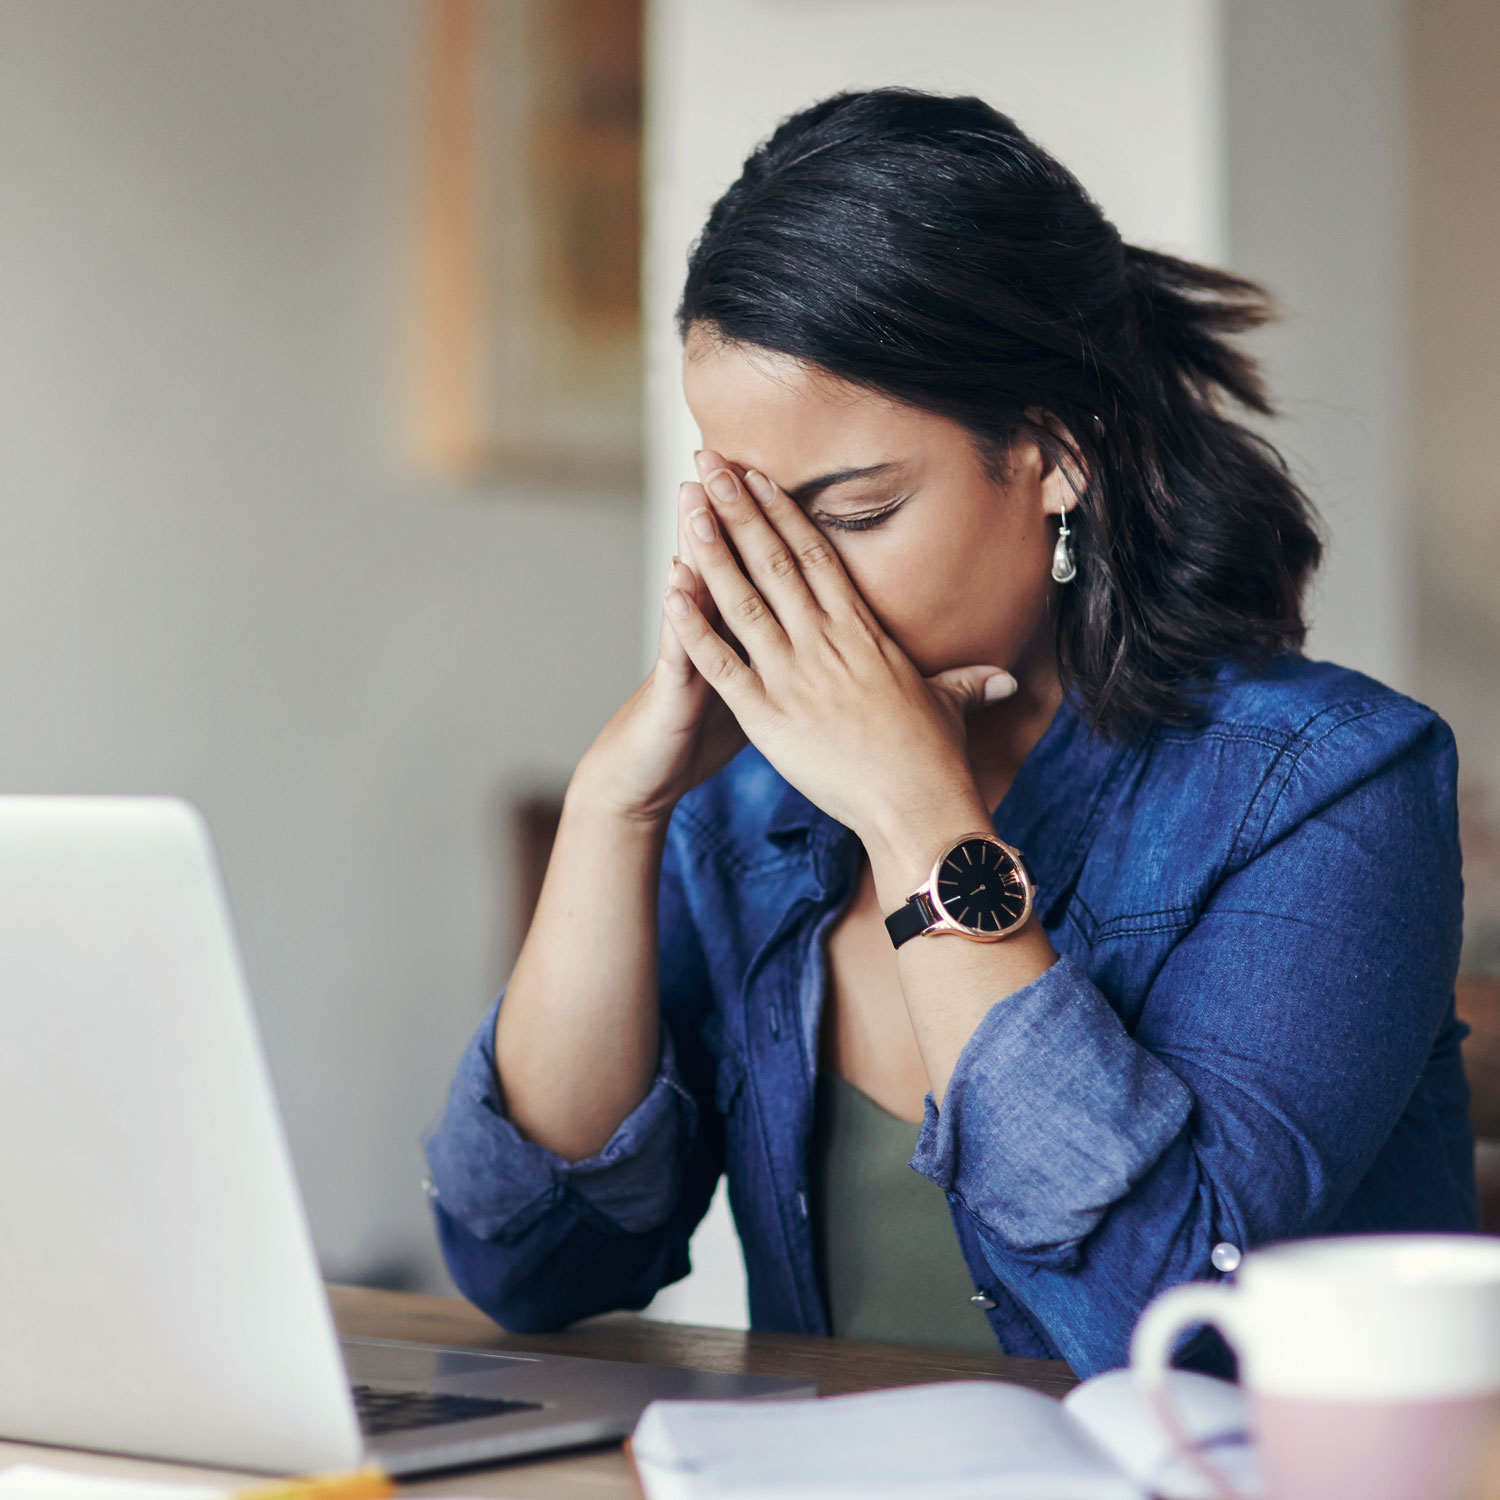 tired woman experiencing burnout and fatigue